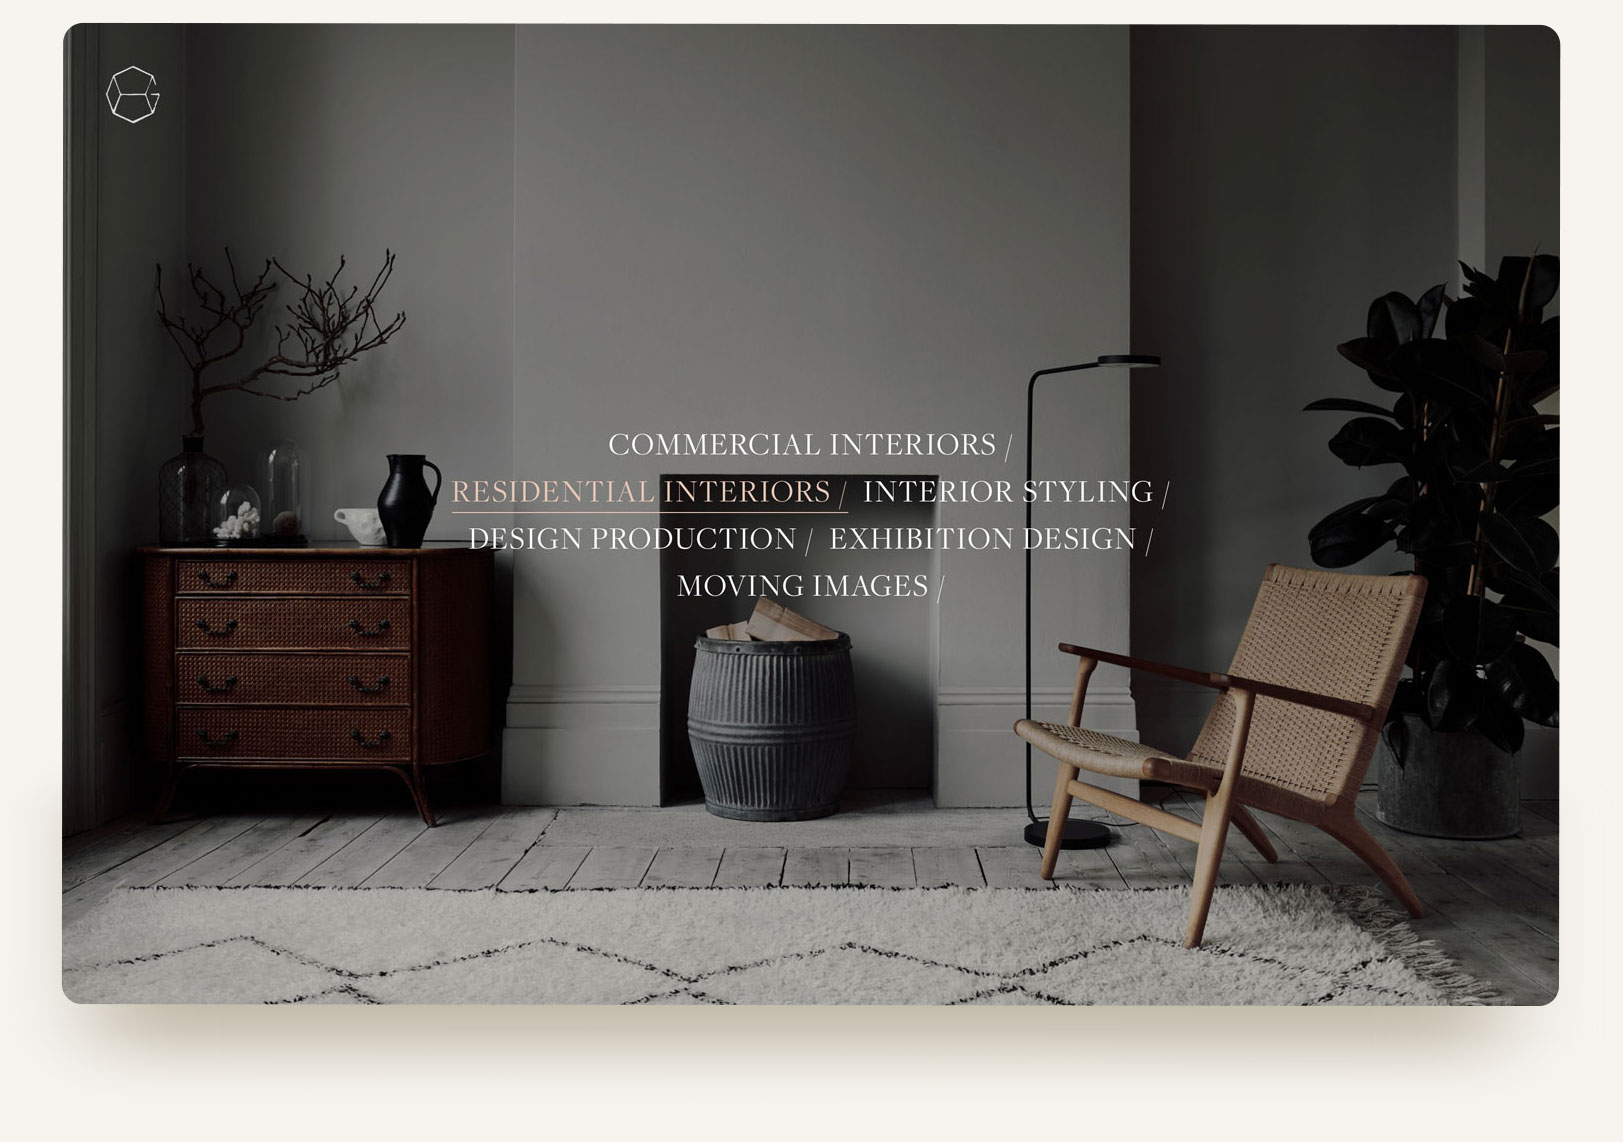 House of Grey residential interior design studio portfolio homepage gallery carousel with typography rollover and video. Squarespace website design and custom code by Brittany Hurdle beckon webeckon